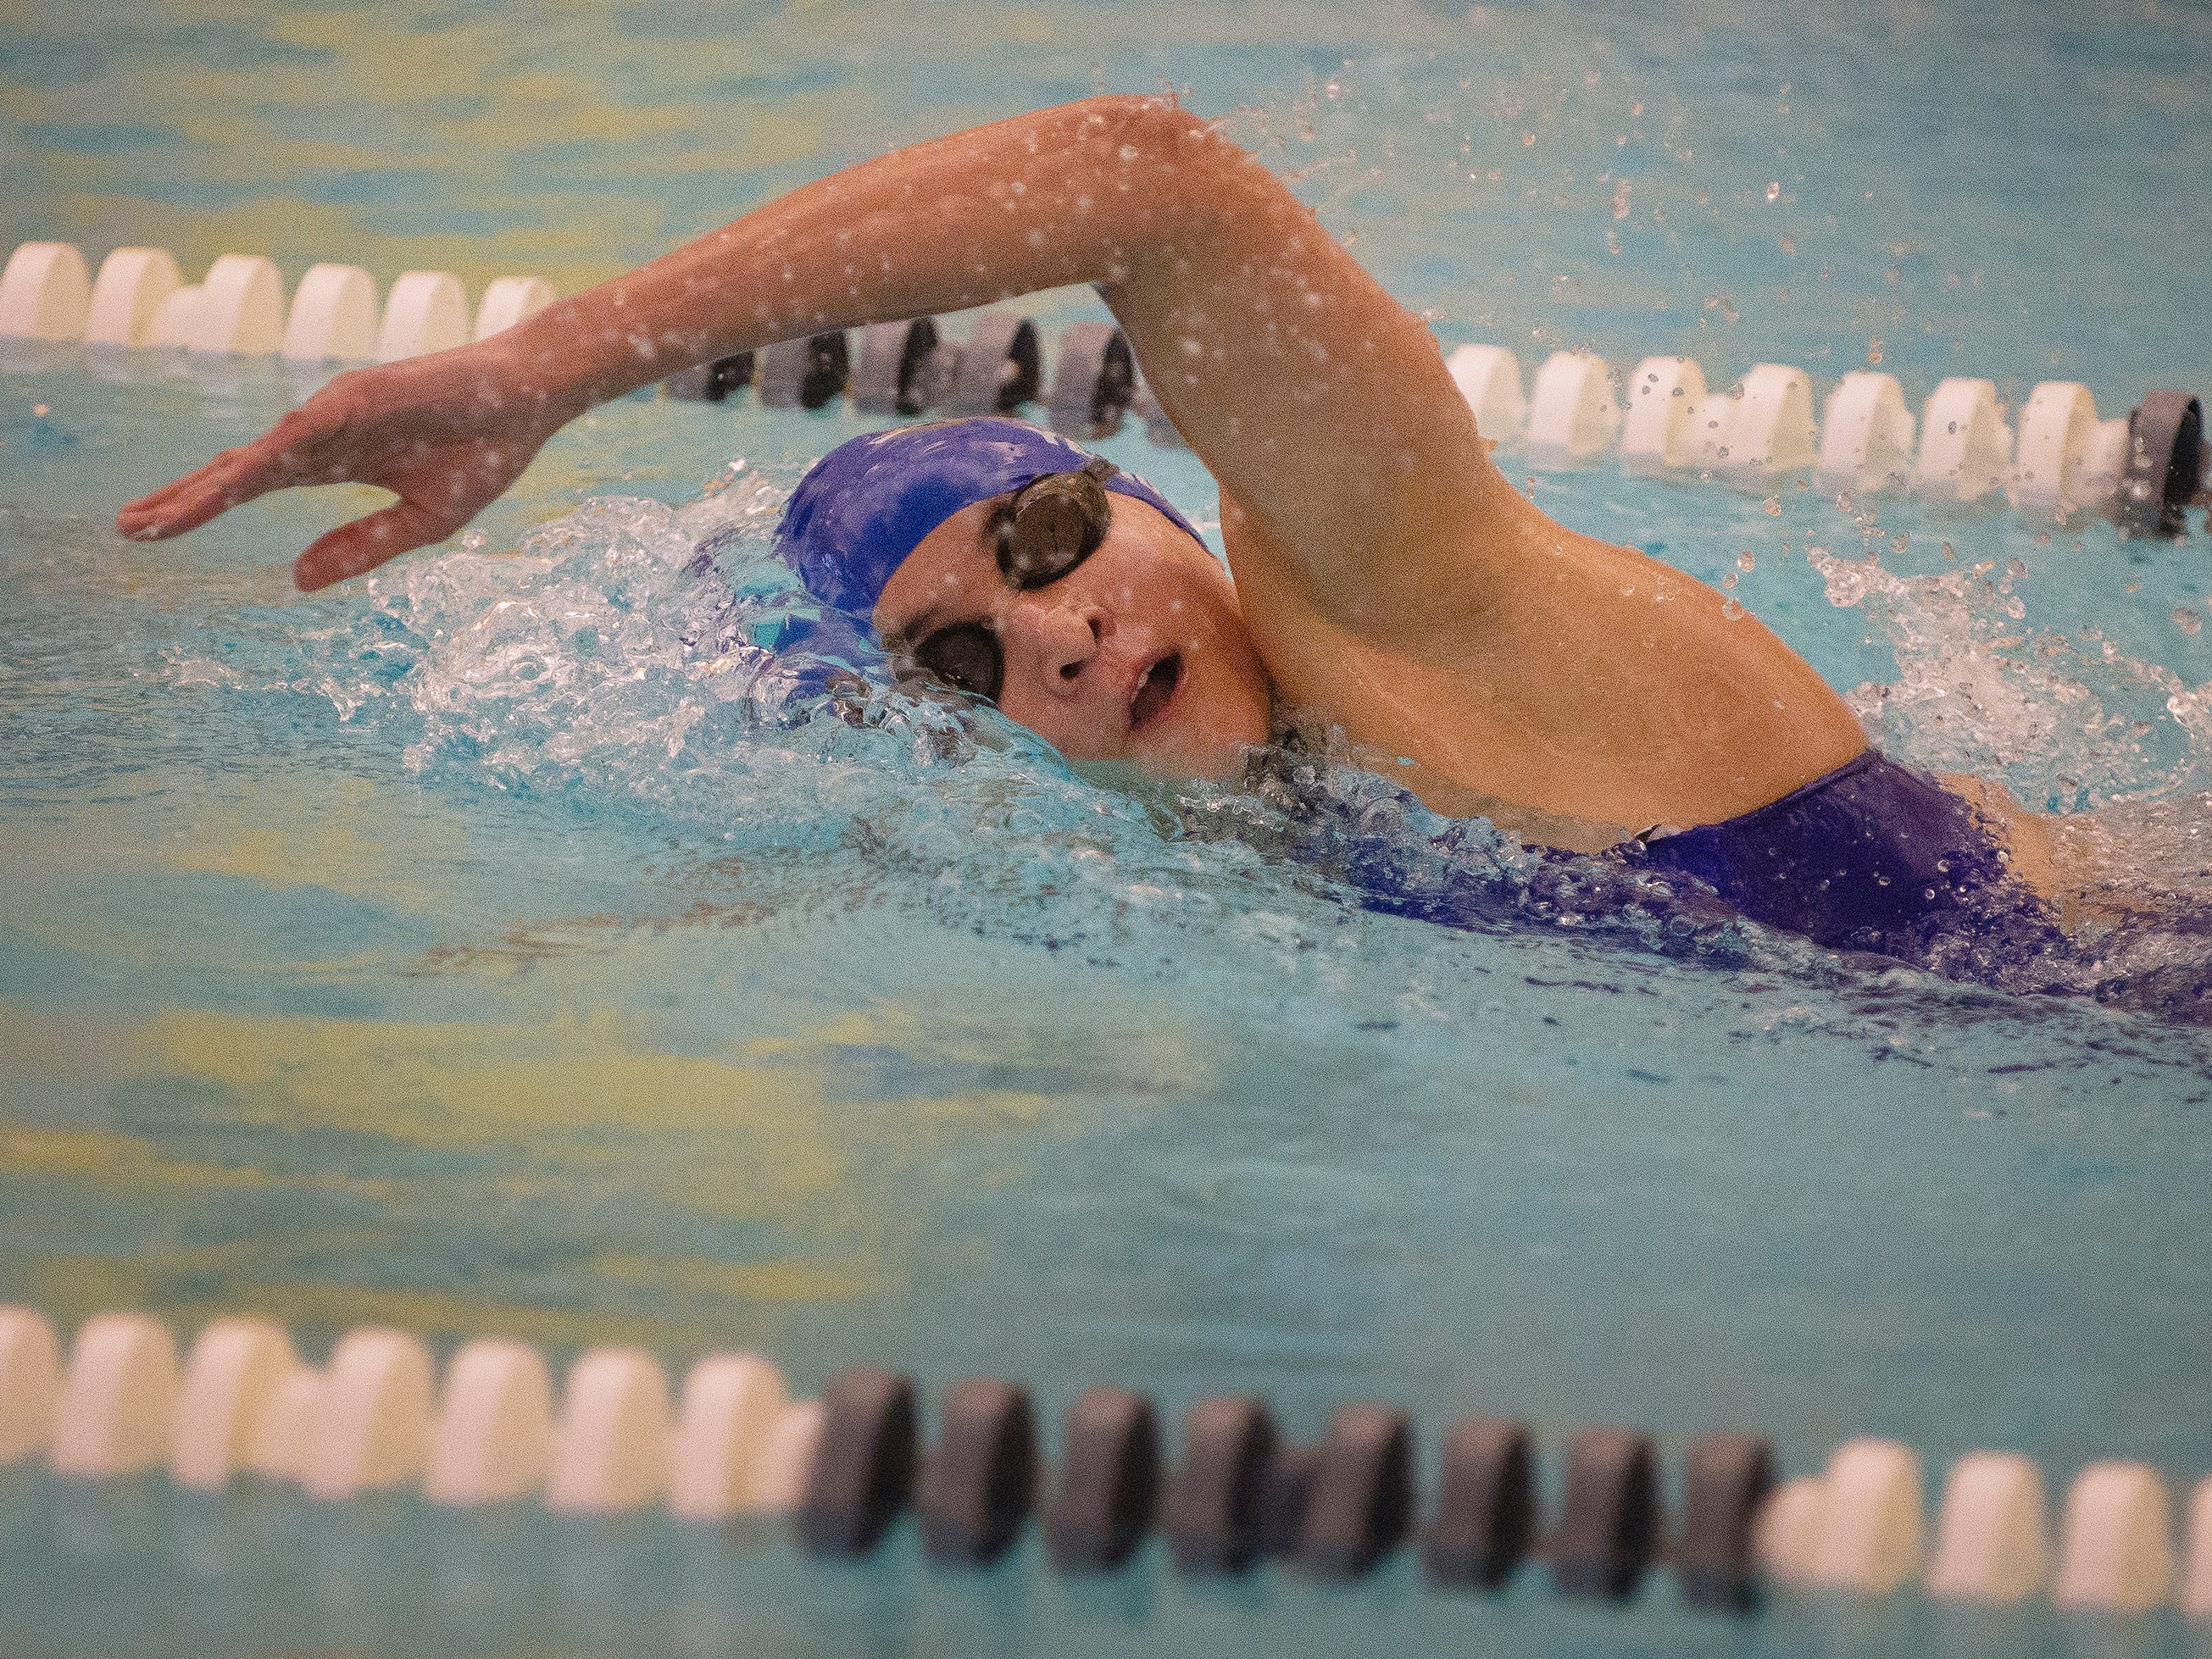 Grace Sendak of Wayne Valley competes in the 500 yard freestyle, which she won first place, during the boys and girls swimming meet between Northern Highlands and Wayne Valley at the Wayne YMCA in Wayne on 12/04/18.